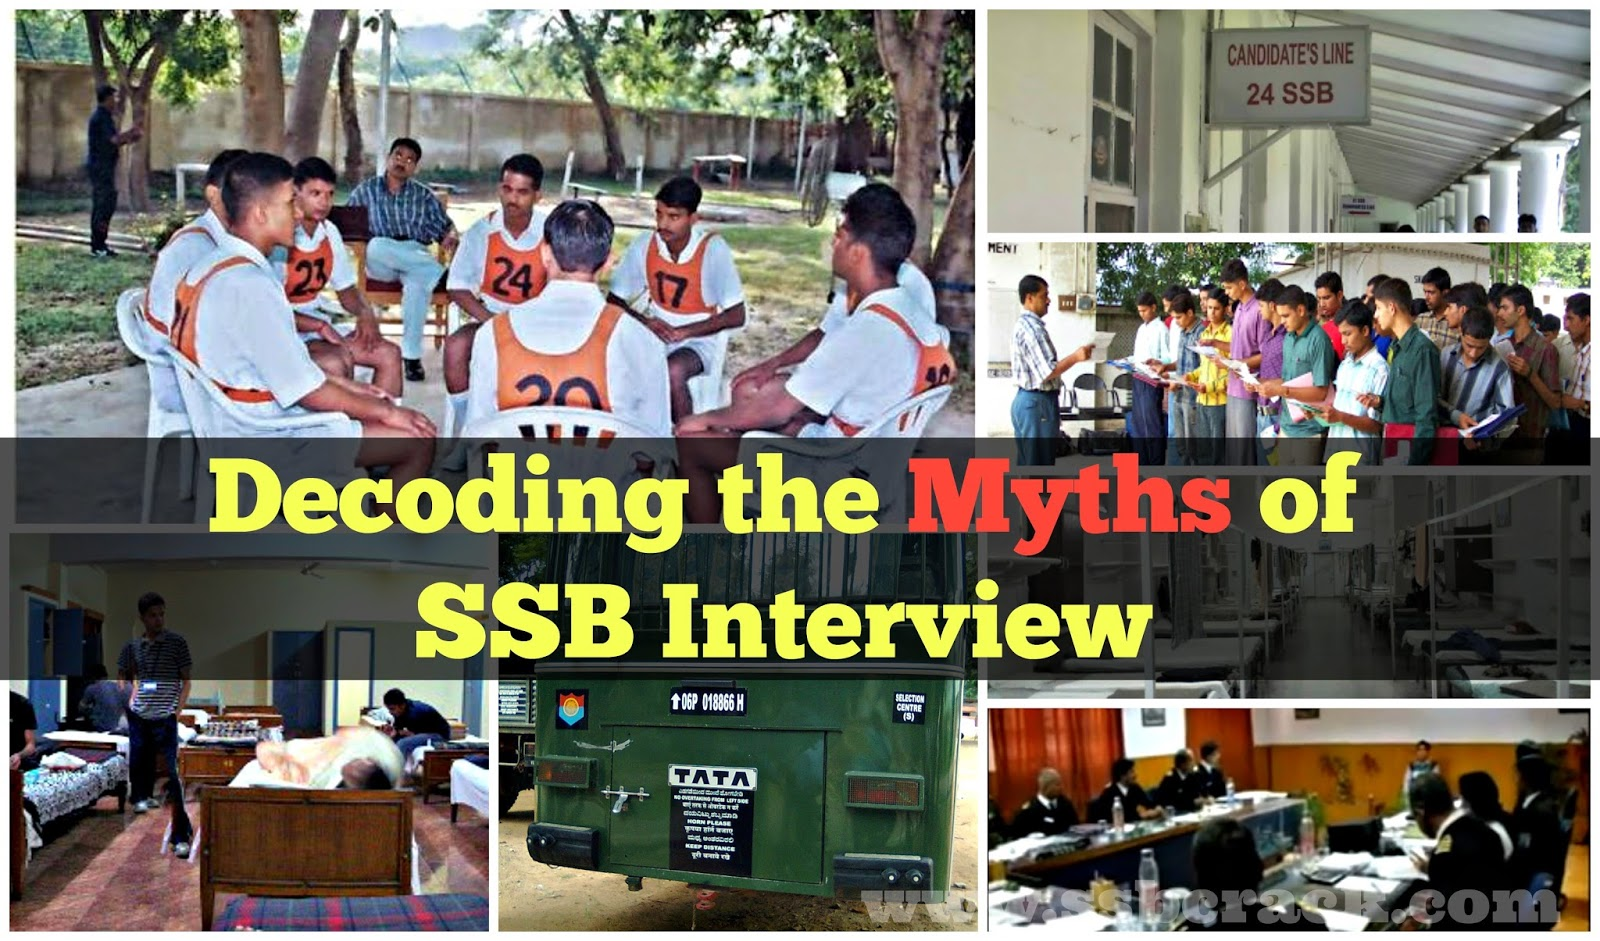 Decoding the Myths of SSB Interview